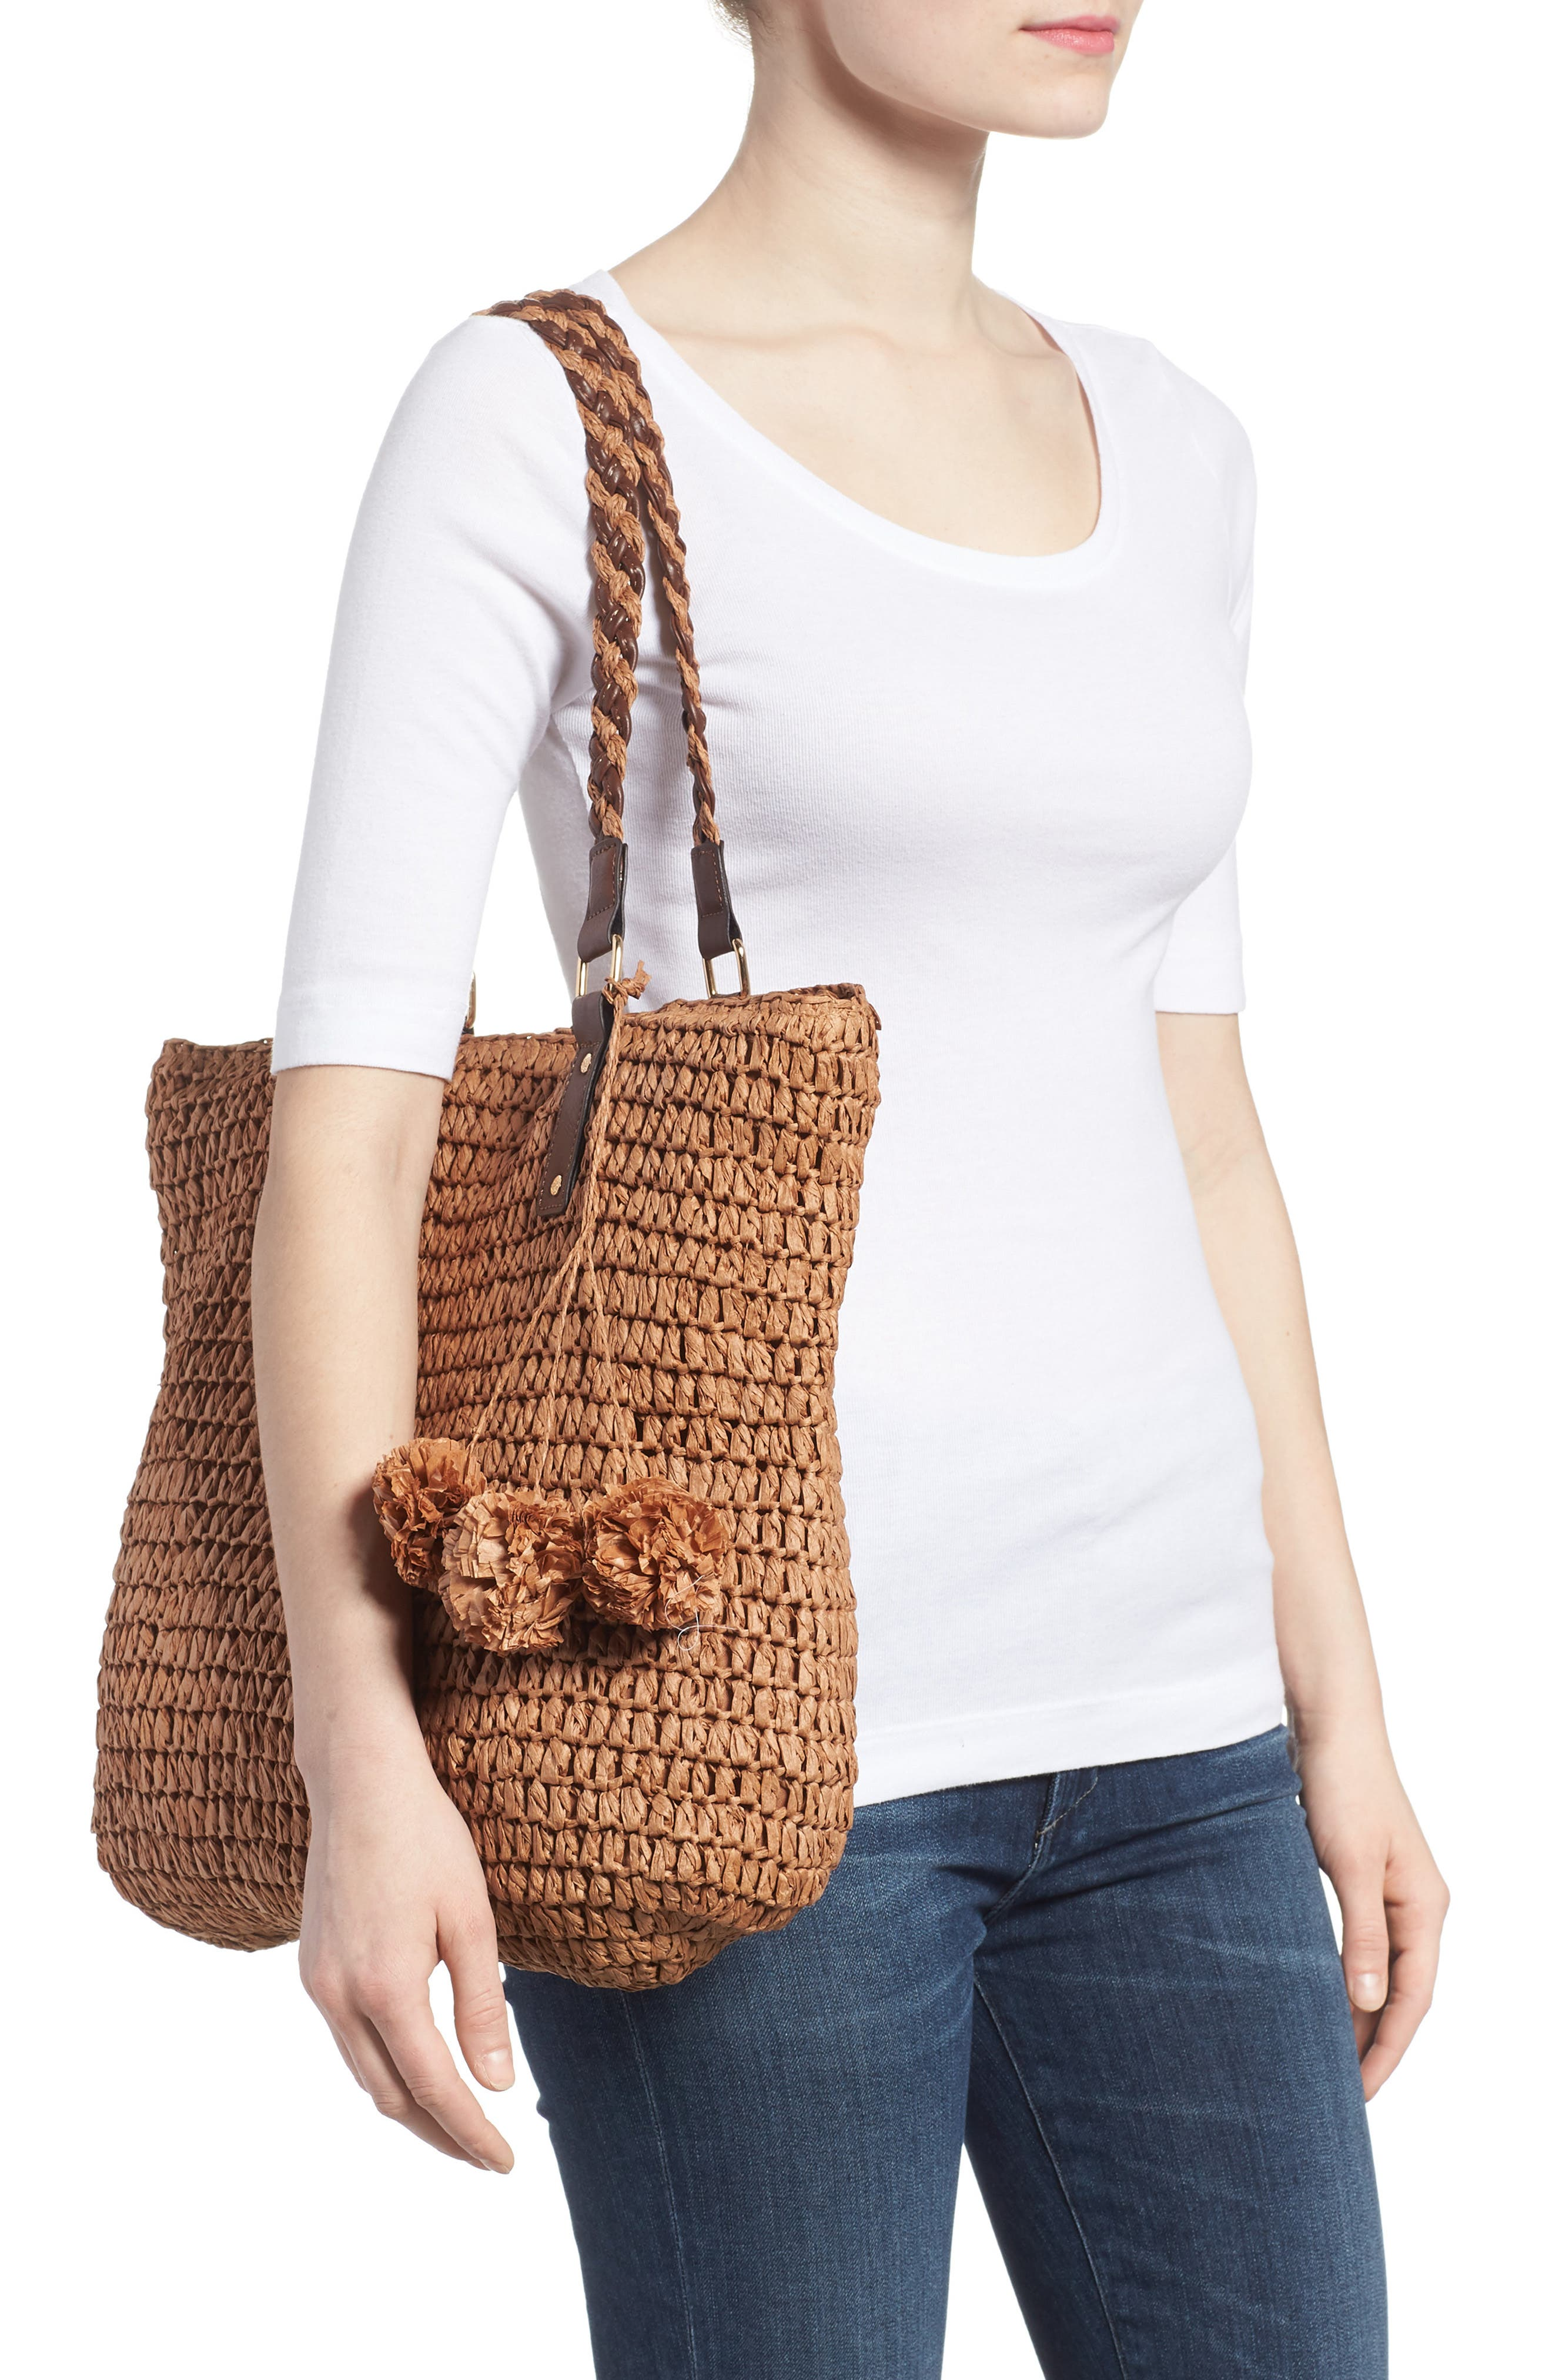 Bahama Mama Straw Tote,                             Alternate thumbnail 2, color,                             207